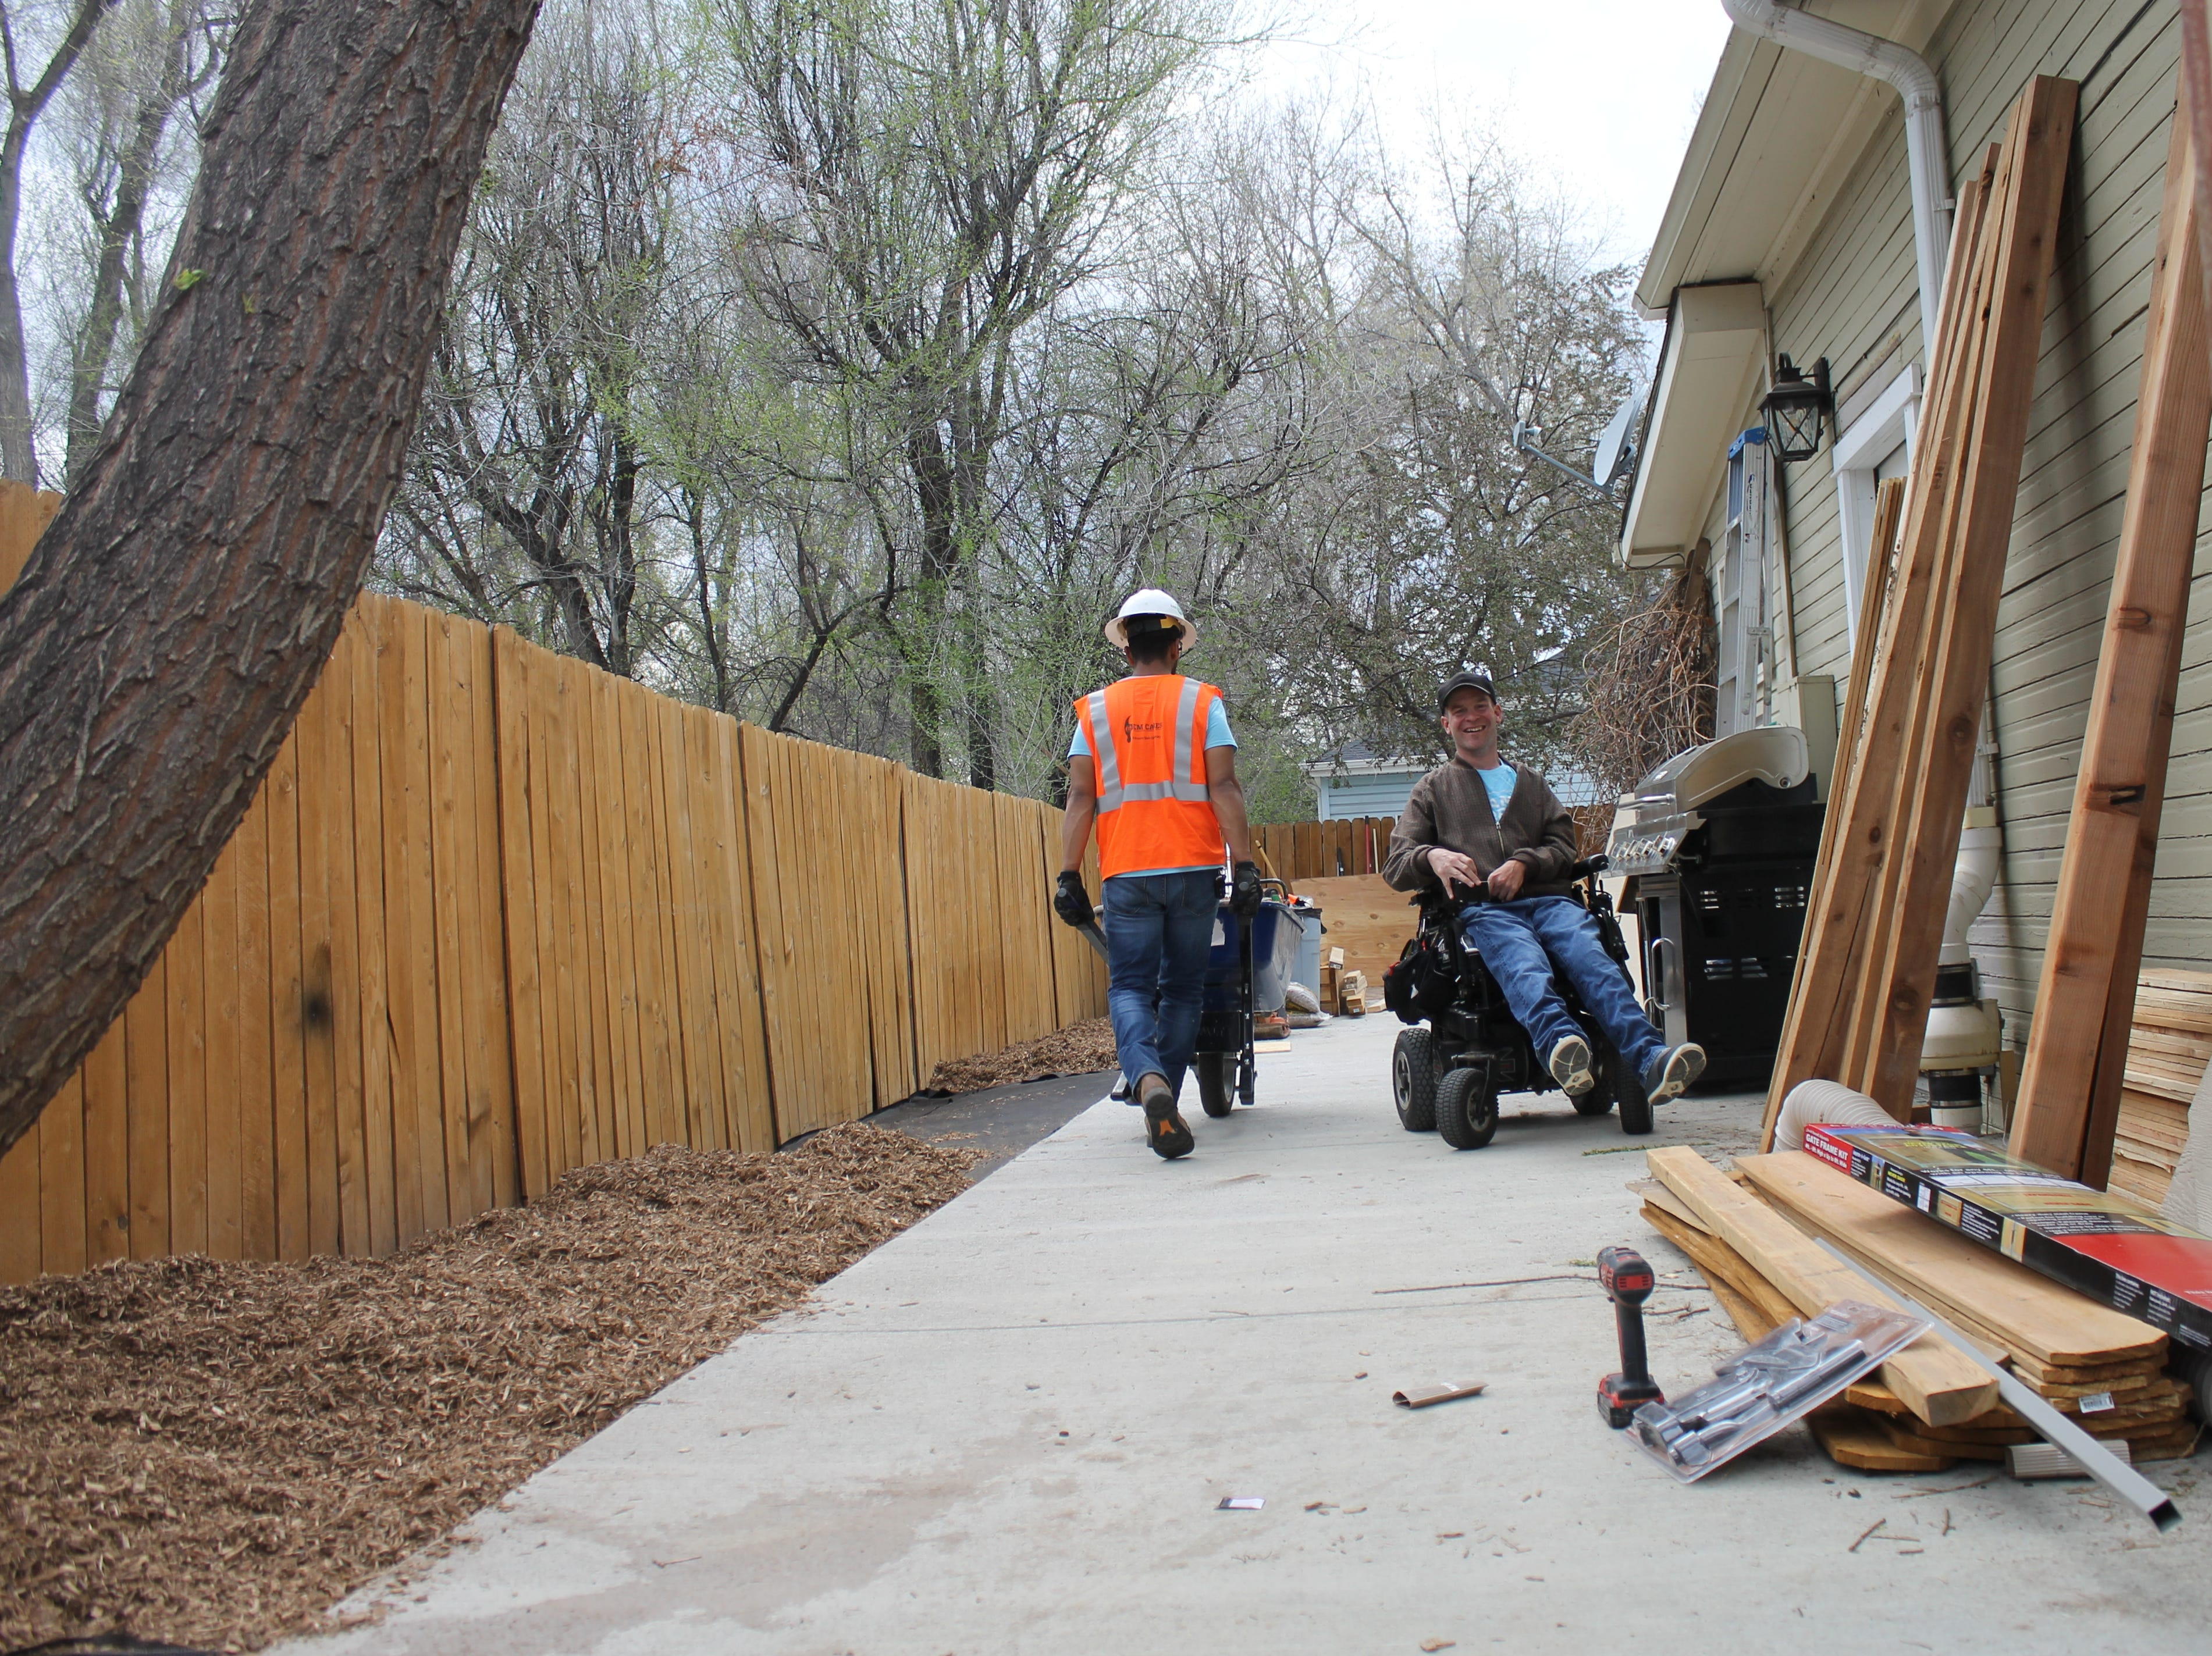 Colorado State University student Saleh Bawareth, left, and property owner Terry Schlicting exchange a laugh as Bawareth hauls mulch Saturday, April 27, 2019. A team of students has been working to make improvements to Schlicting's house since February. Their aim is to make Schlicting's home more wheelchair accessible.